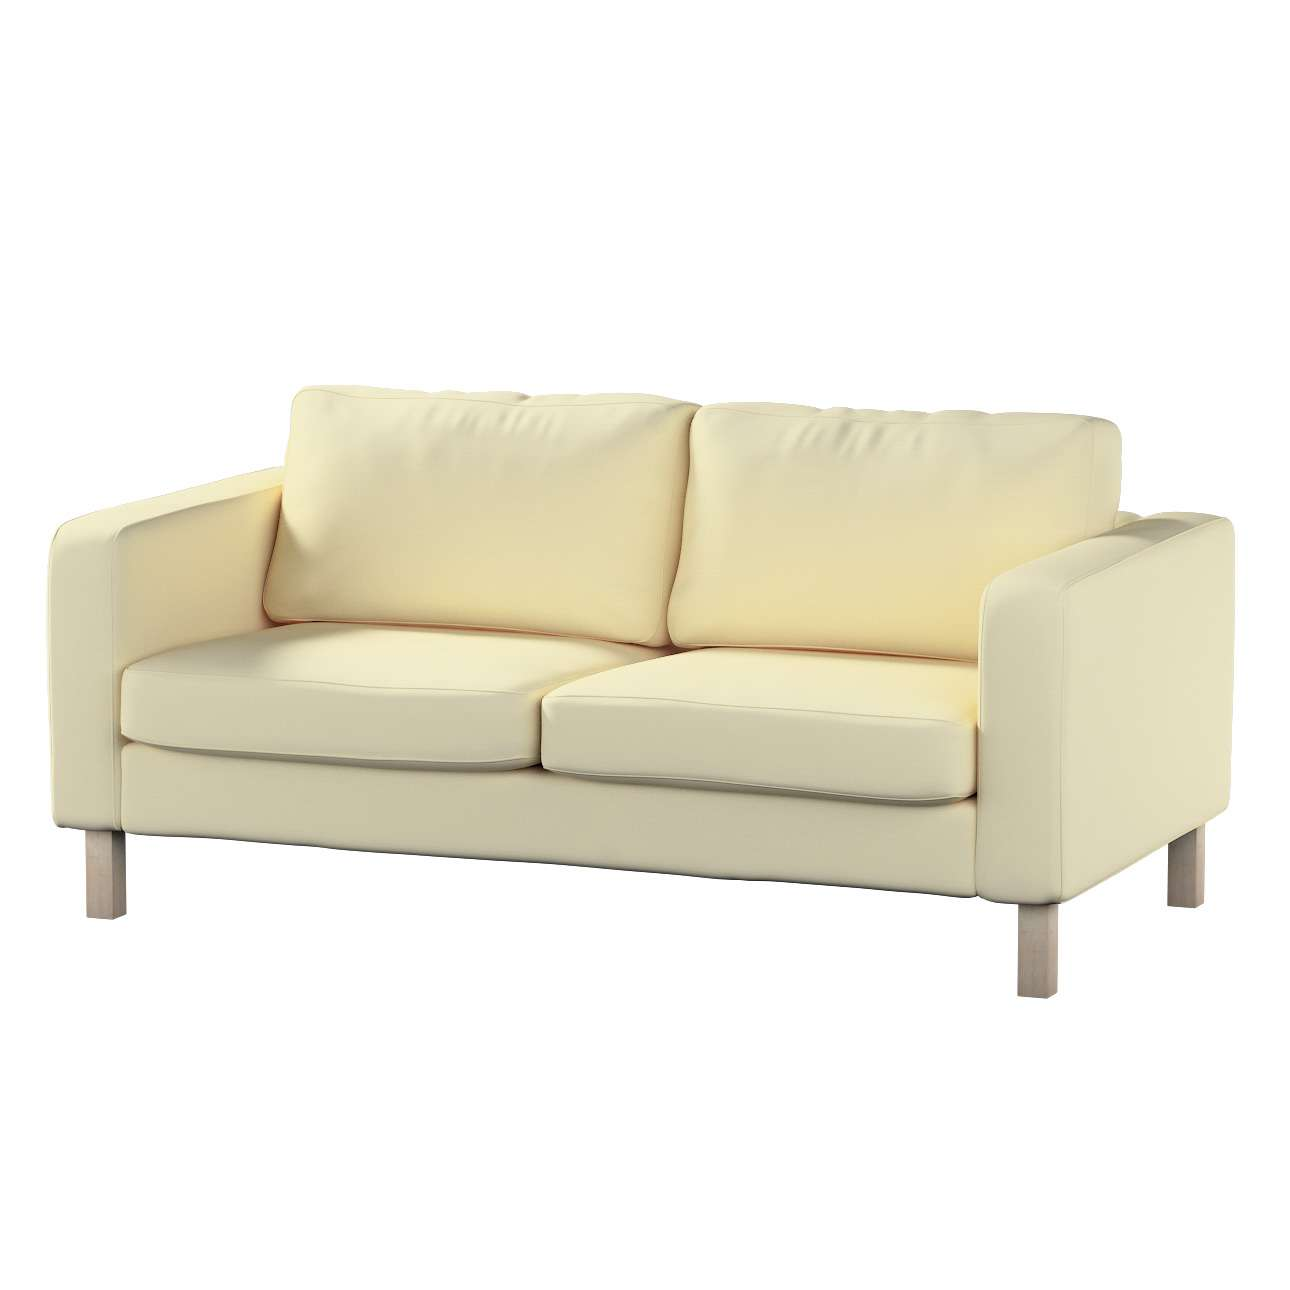 Karlstad 2-seater sofa cover in collection Panama Cotton, fabric: 702-29